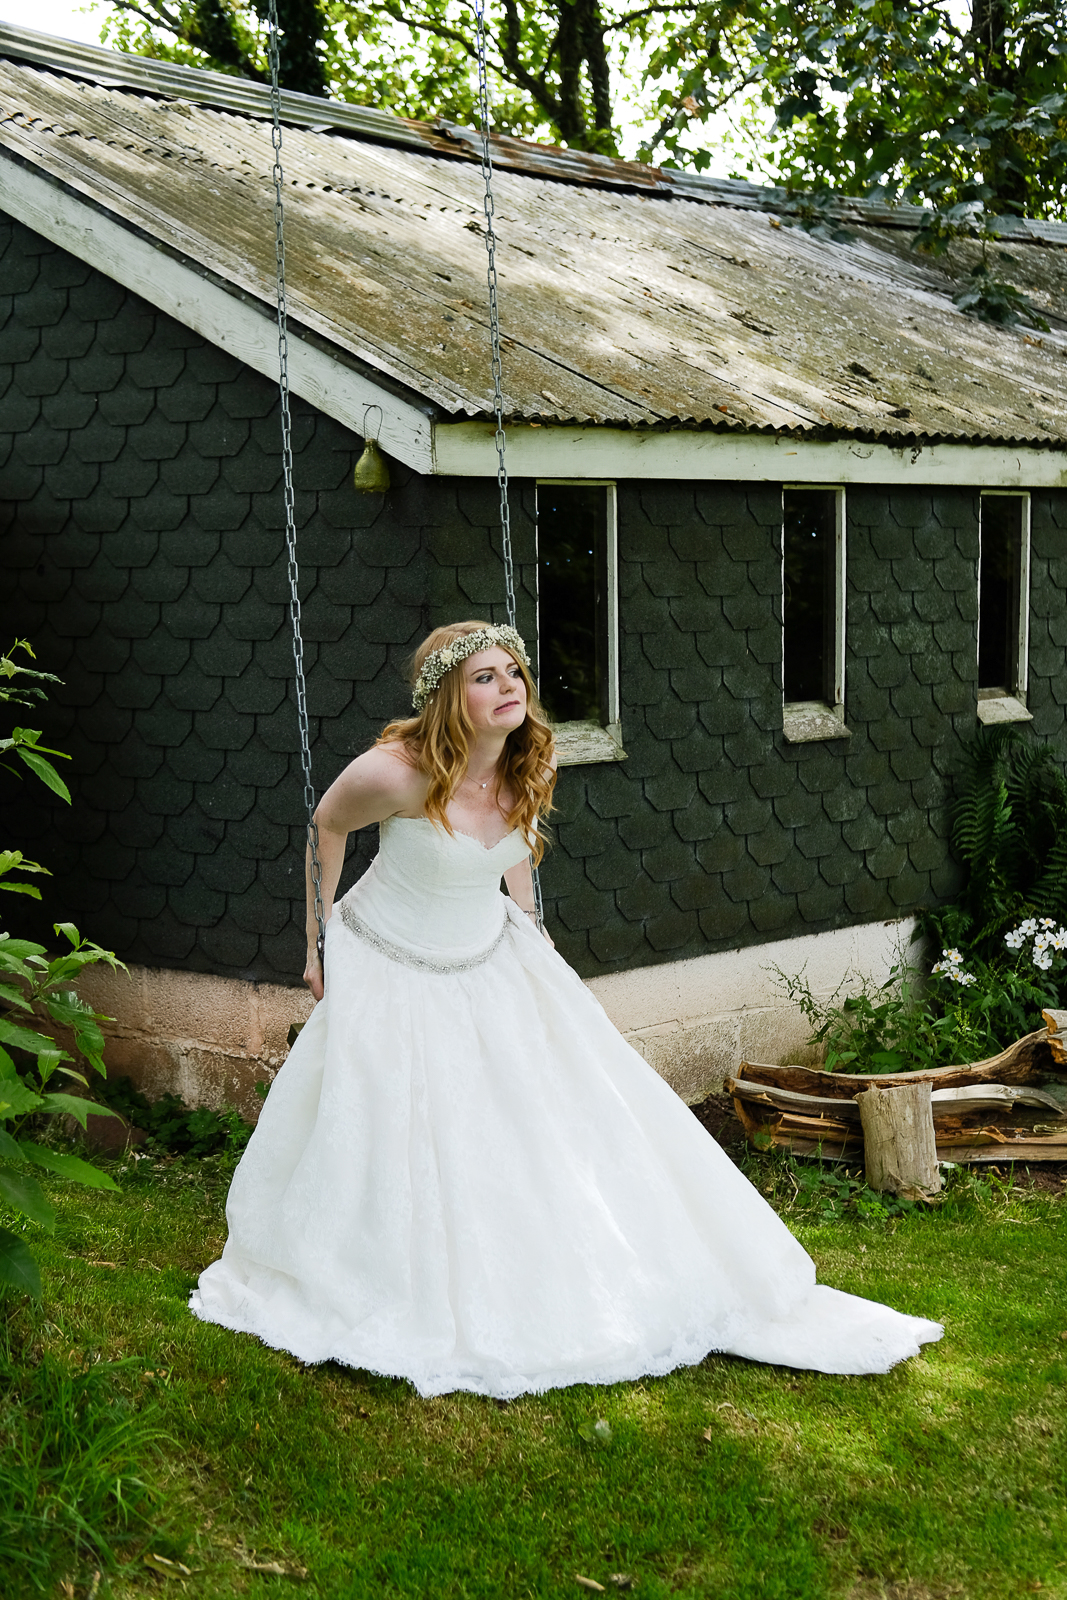 Rustic elopement at The Cow Shed in Cornwall 057.jpg